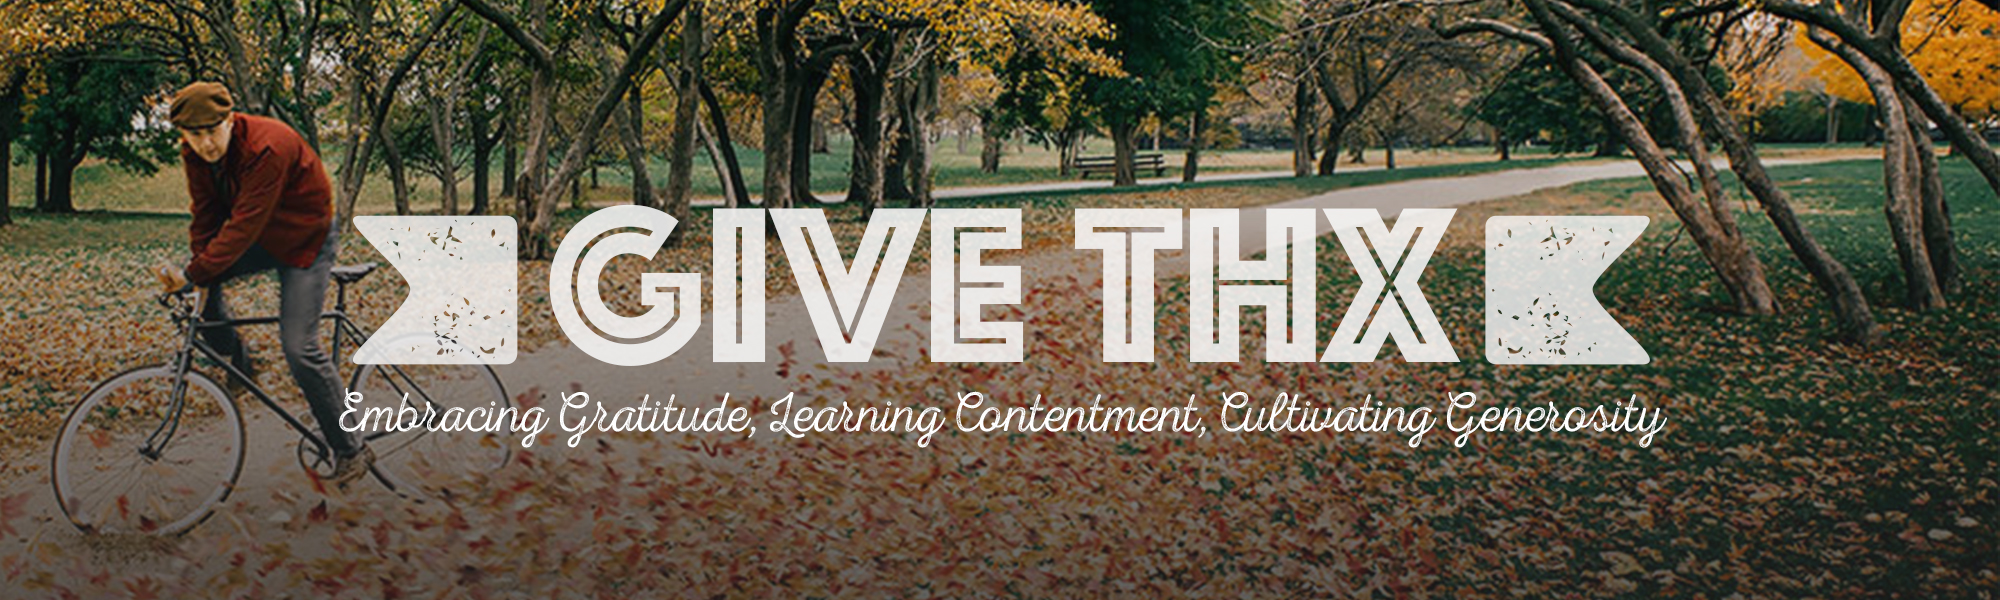 Give Thx: Week 1